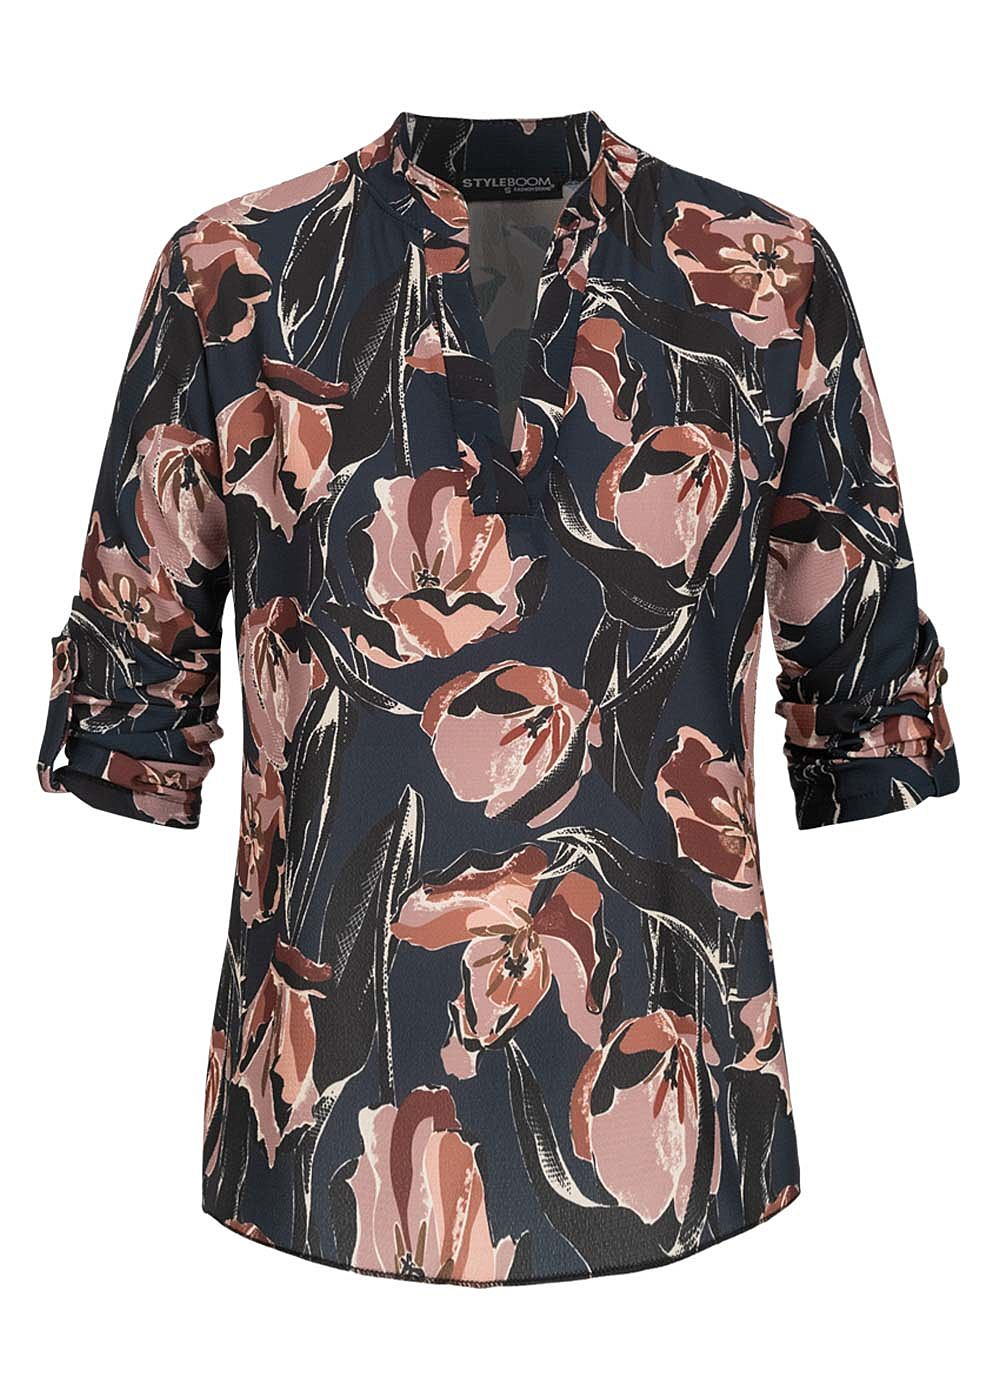 Styleboom Fashion Damen Turn-Up Bluse V-Neck Blumen Print schwarz blau - Art.-Nr.: 19127023